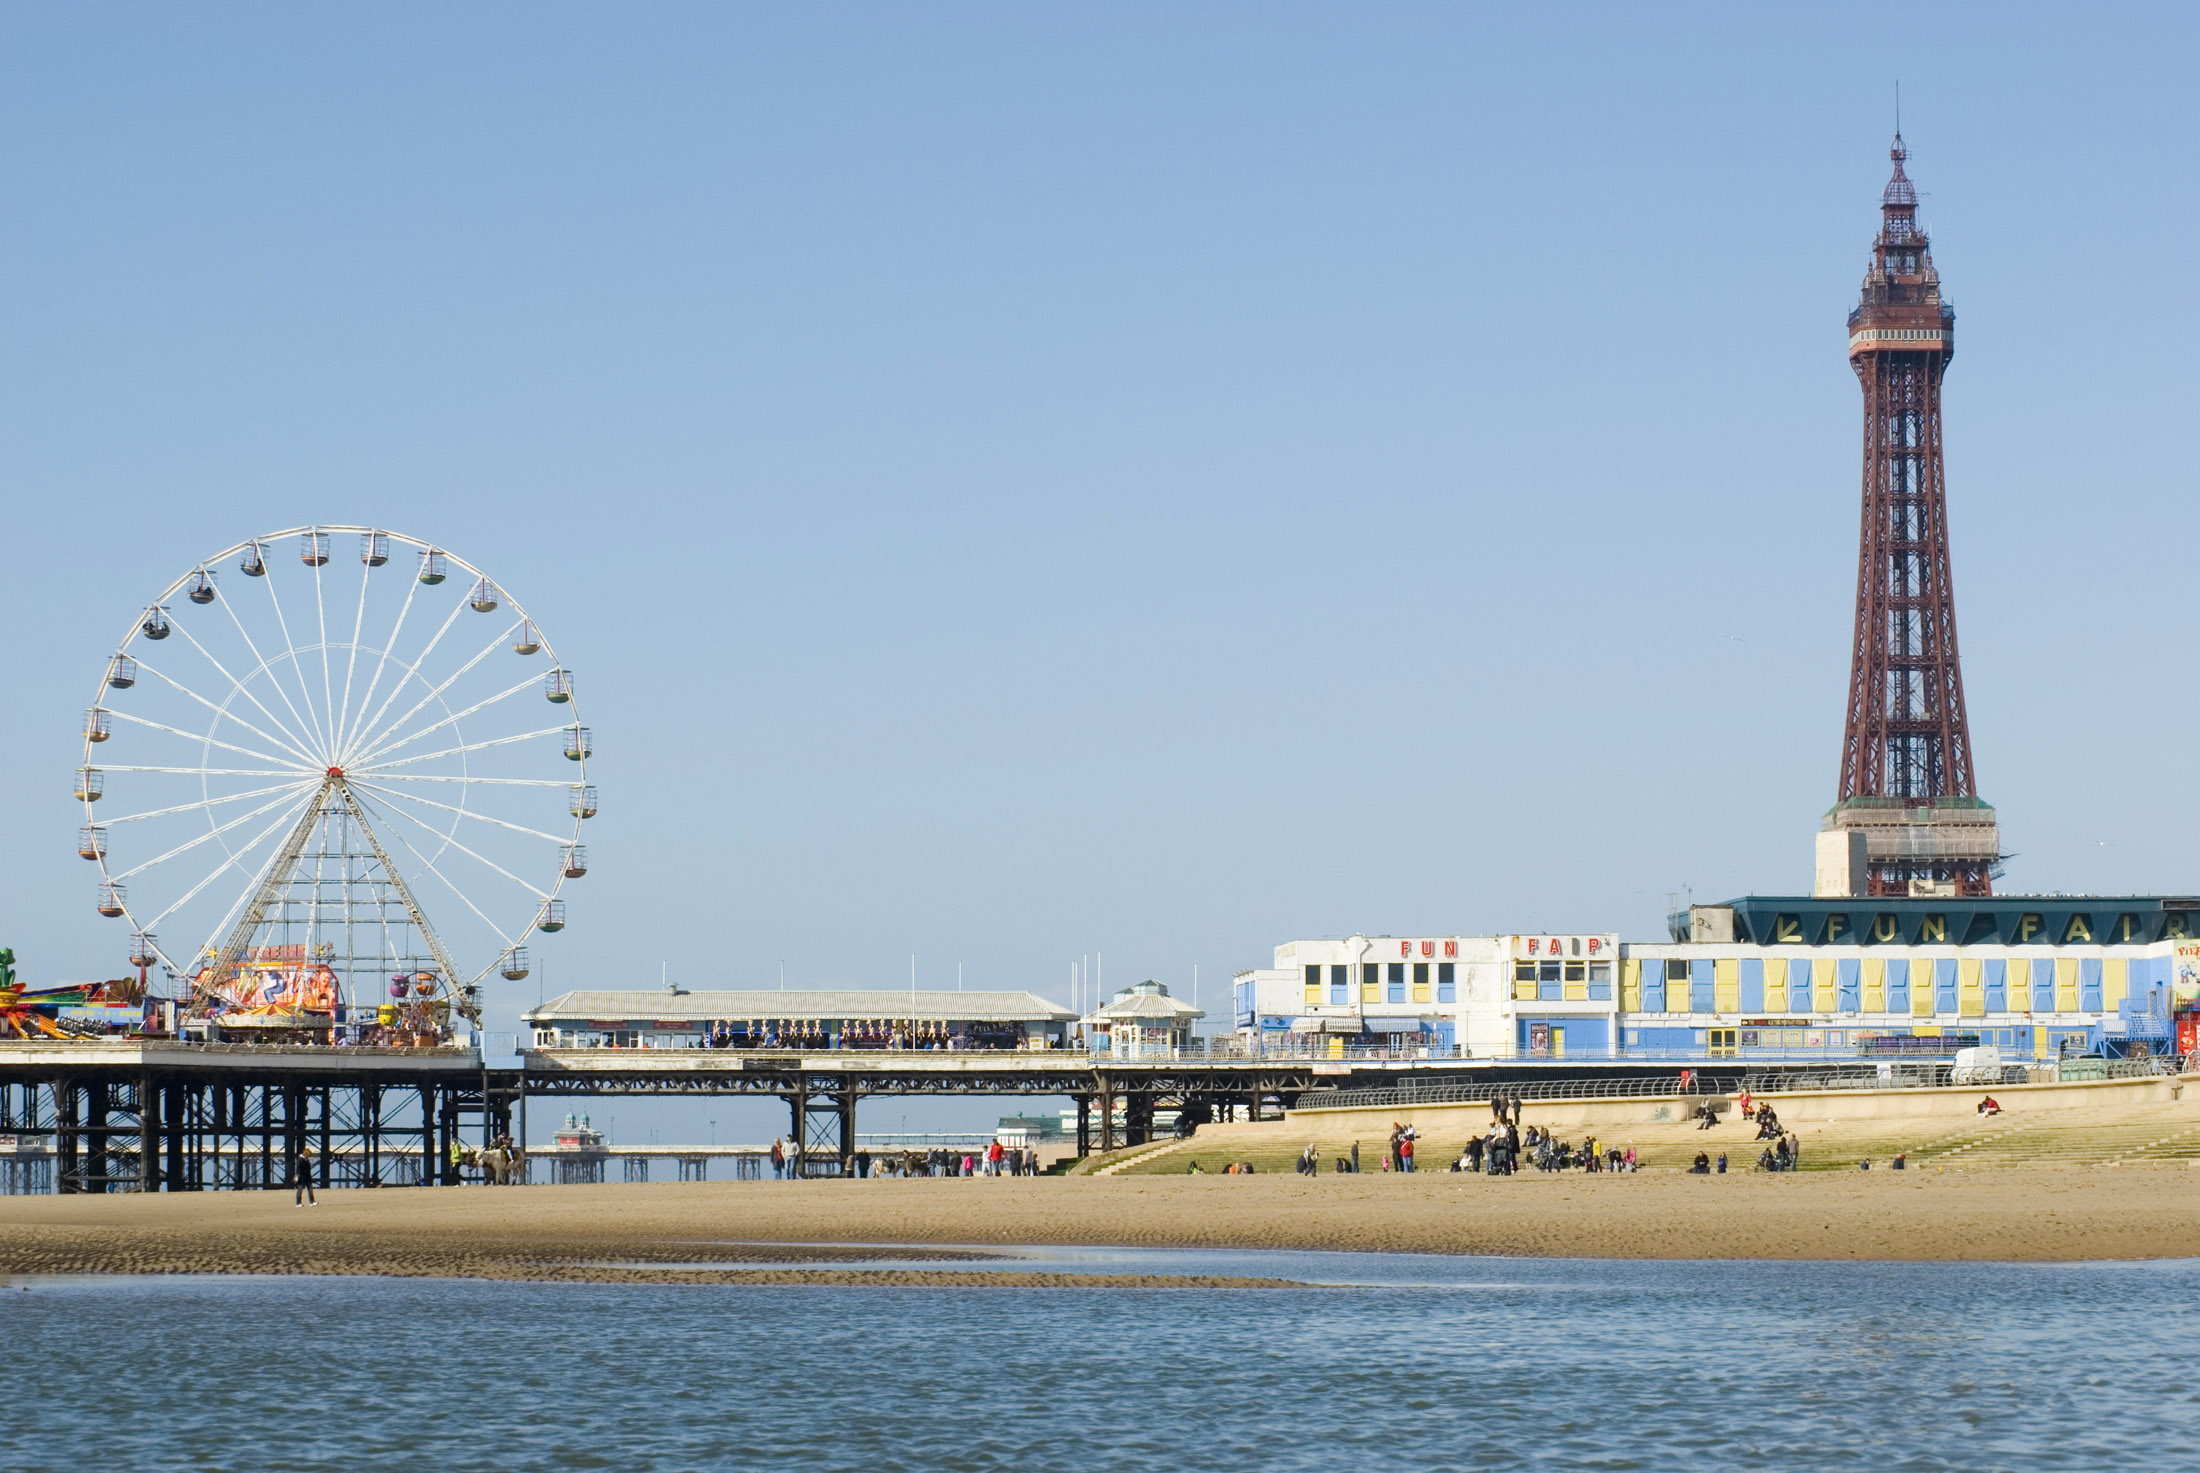 a view of blackpools central pier and the iconic tower